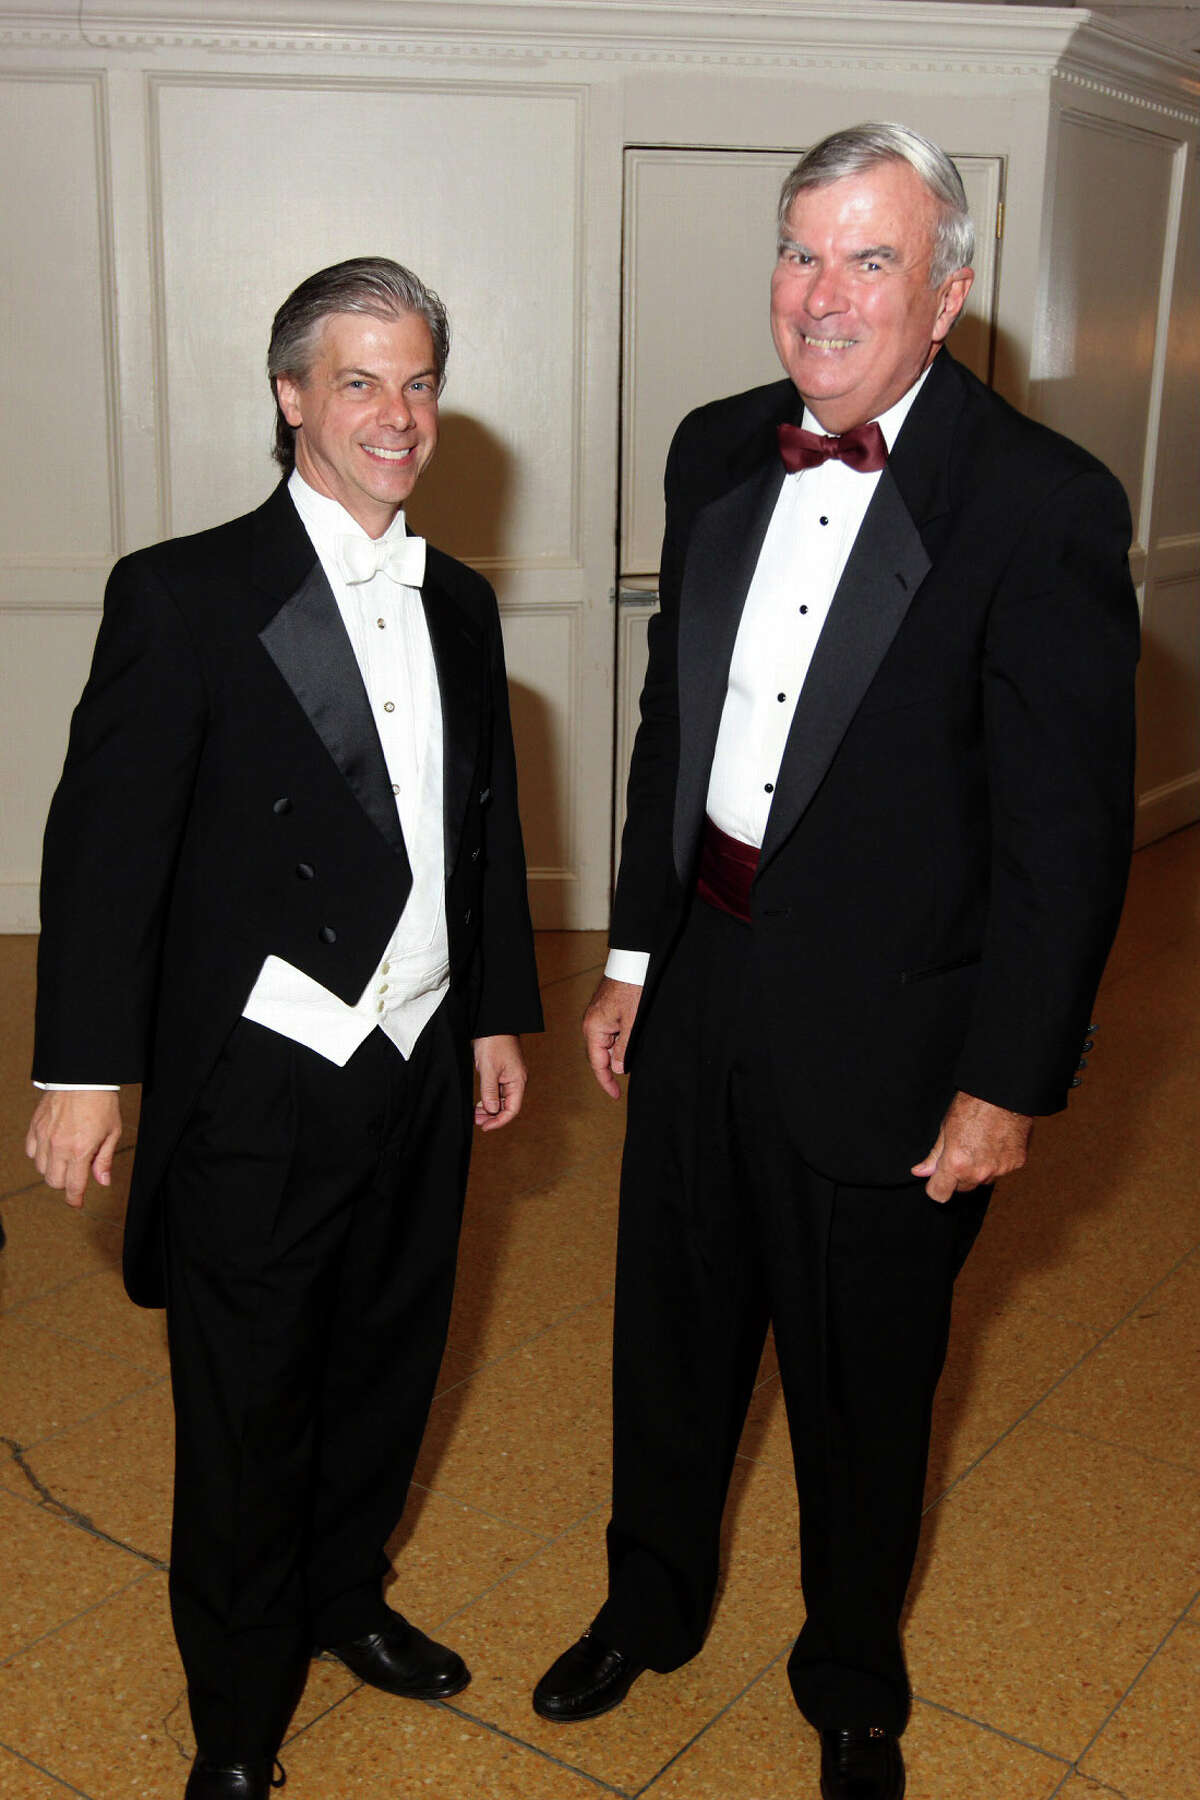 Were you Seen at the the 2013 Opera Saratoga Gala at the Hall of Springs in Saratoga Springs on Friday, June 14, 2013?